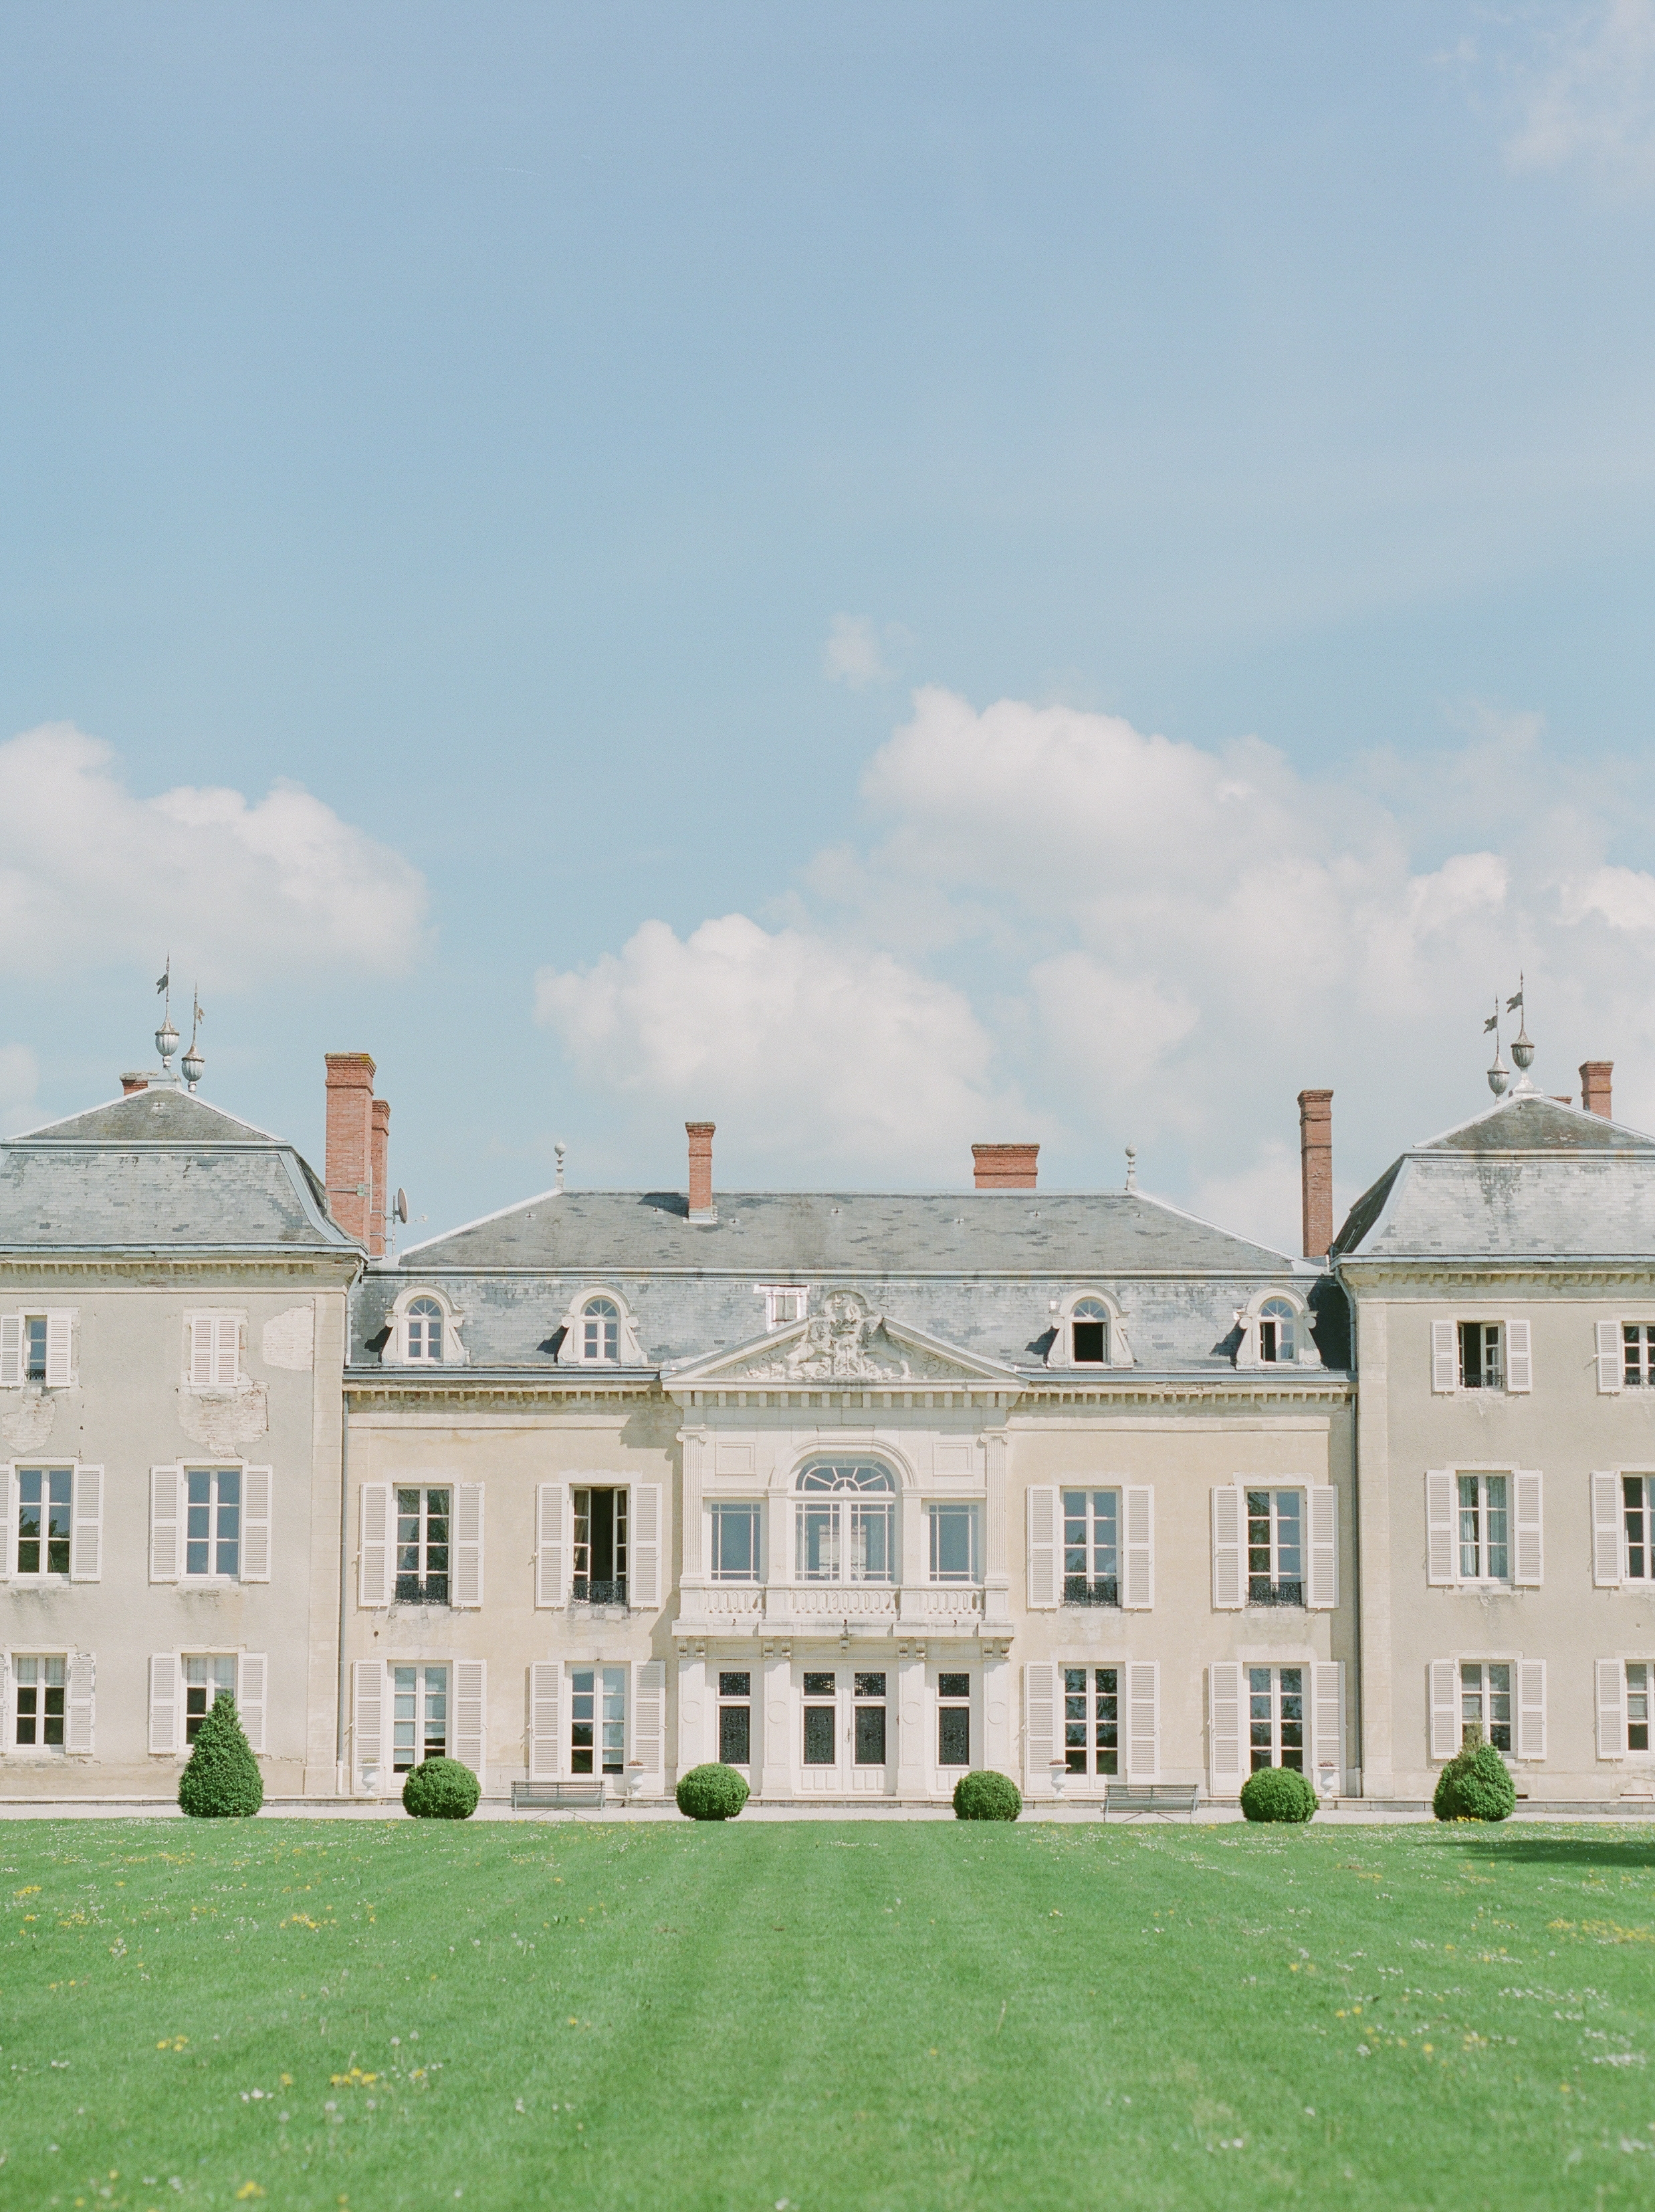 Garance + Adrien - Chateau de Varennes Wedding, France